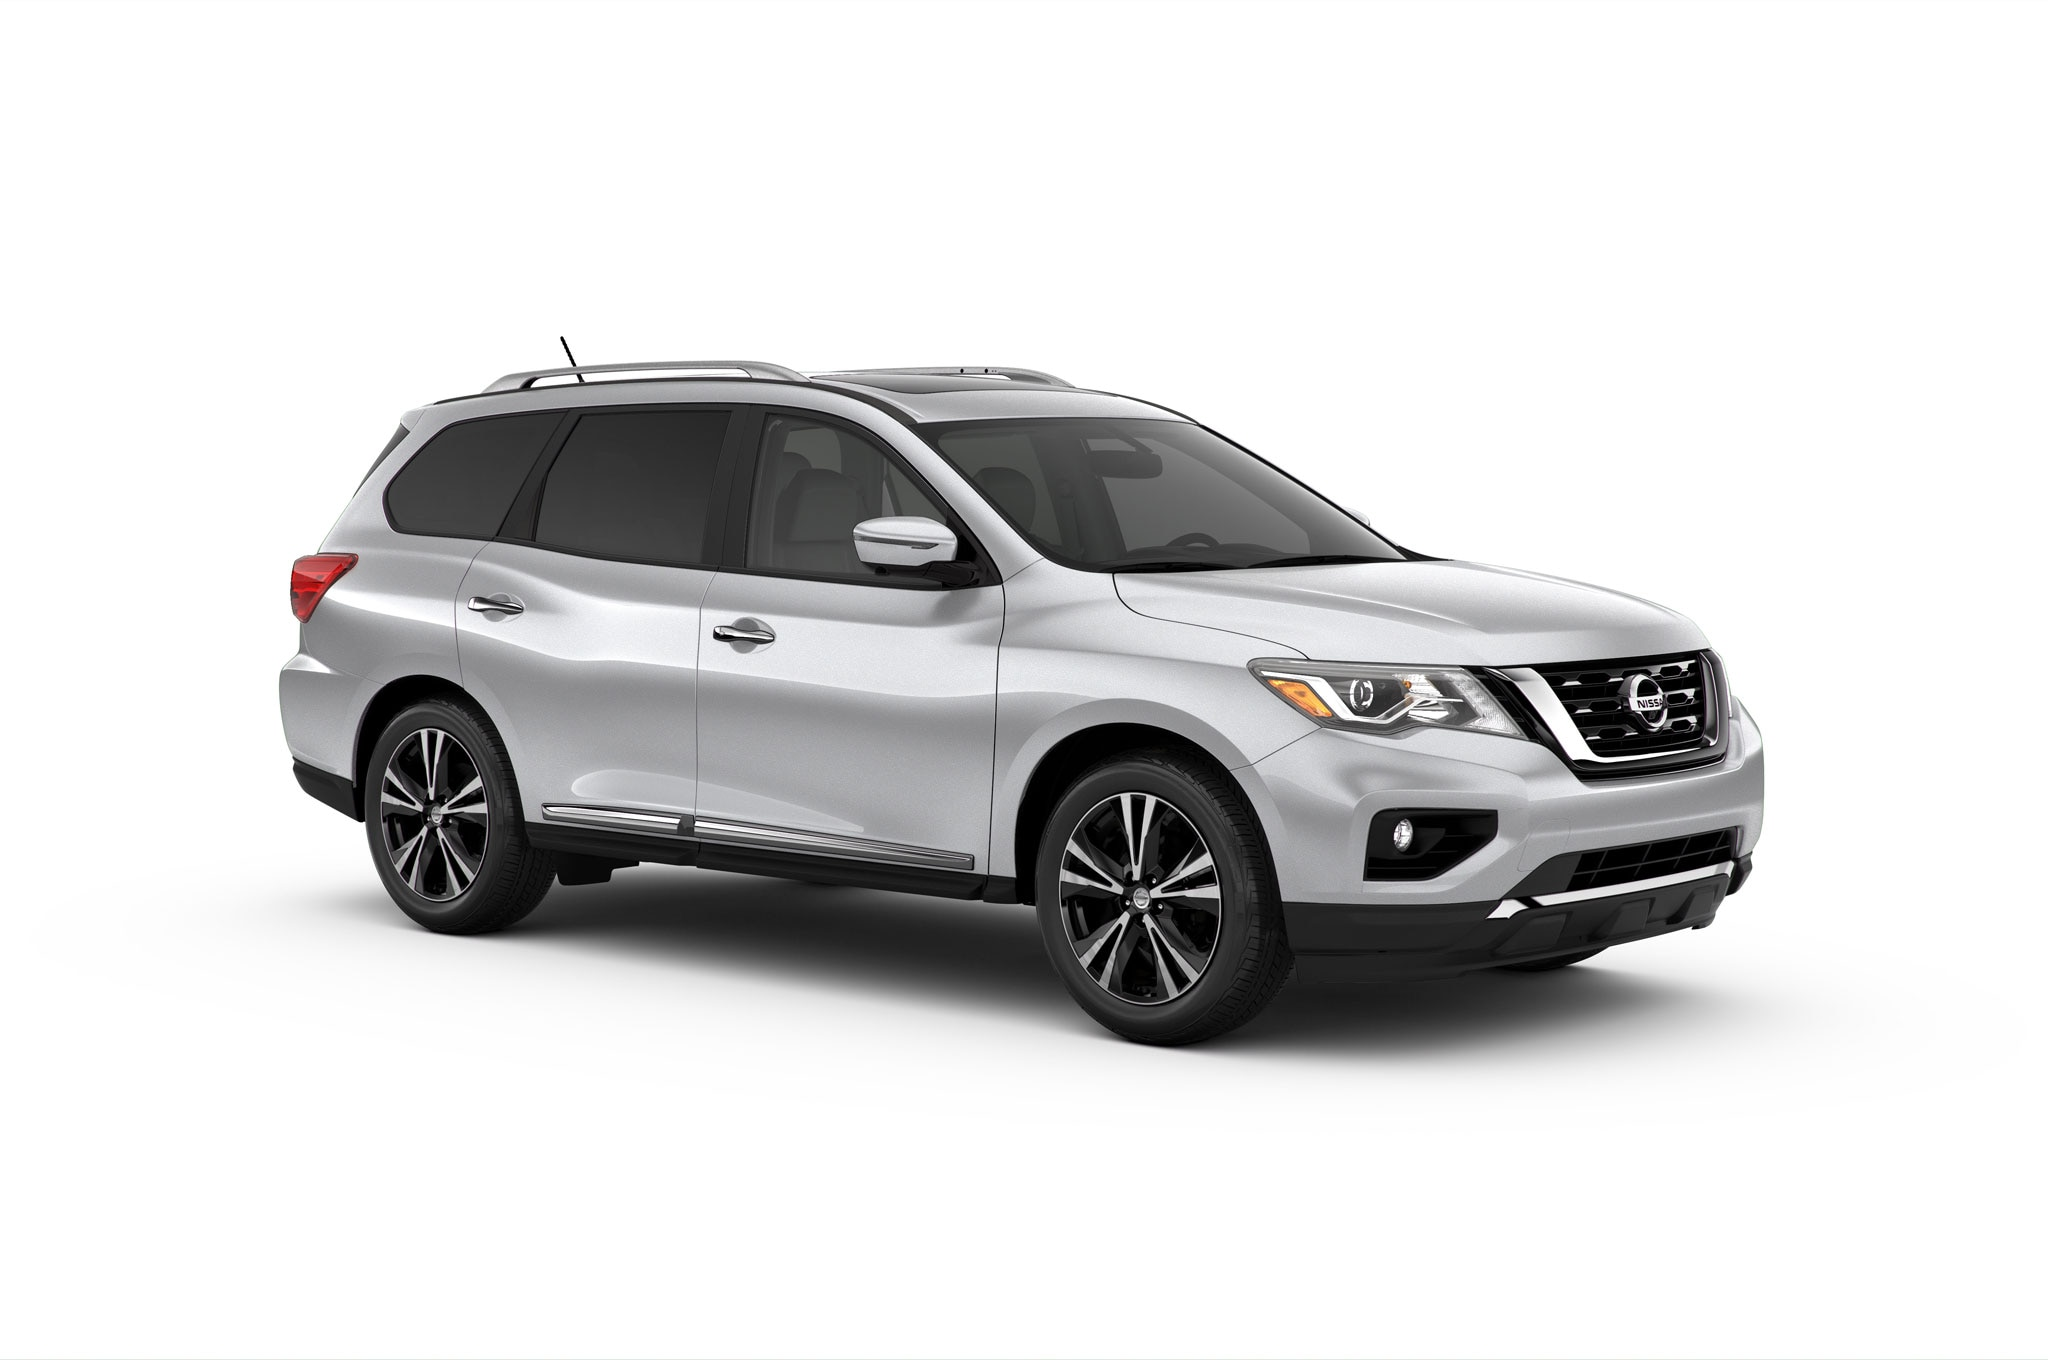 2017 nissan pathfinder front quarter in studio 17